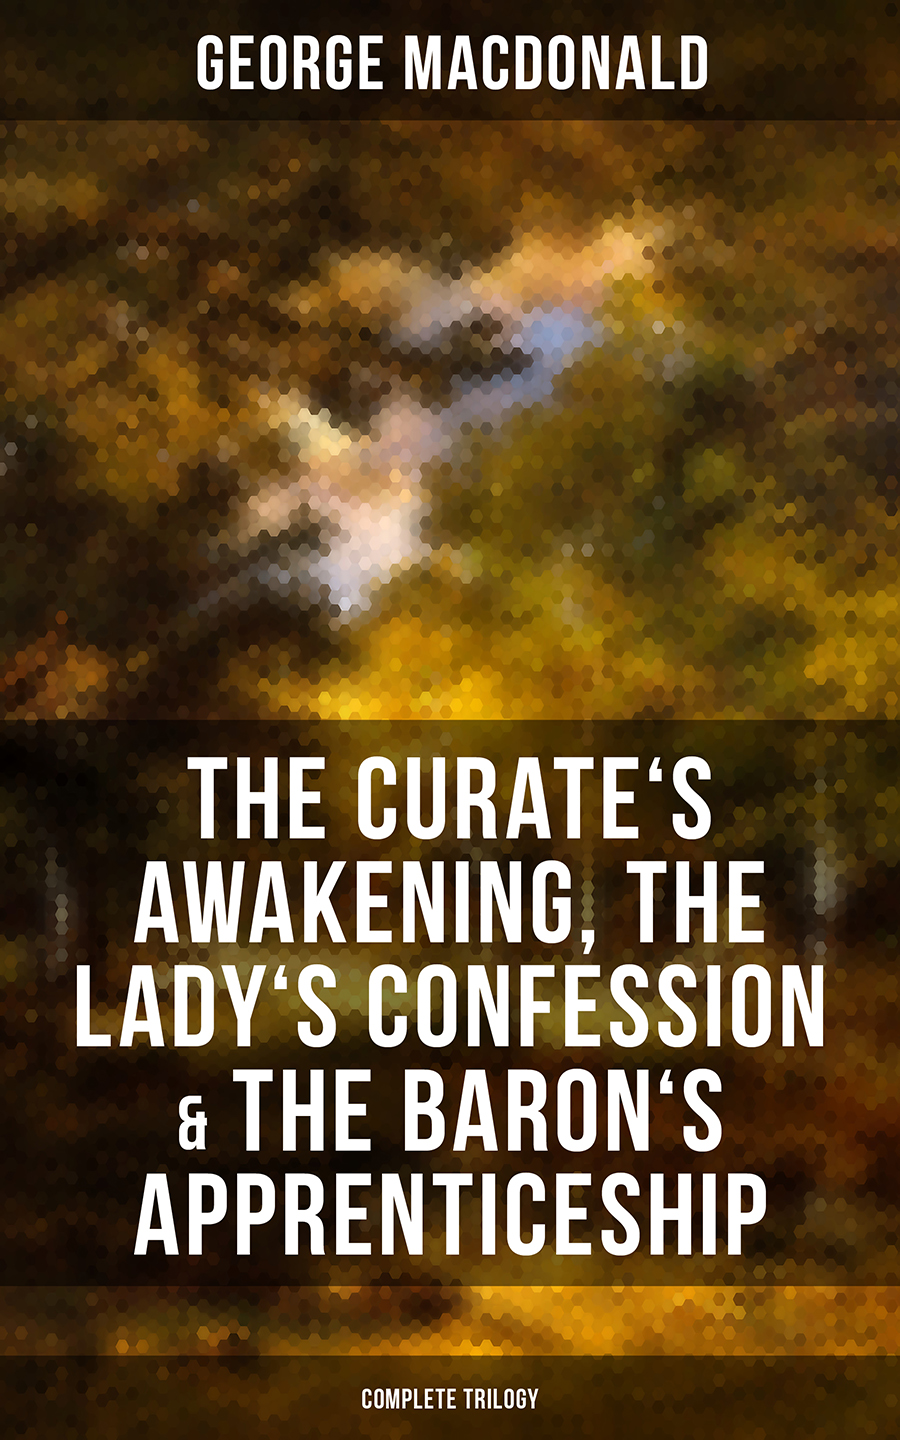 George MacDonald The Curate's Awakening, The Lady's Confession & The Baron's Apprenticeship (Complete Trilogy) the awakening